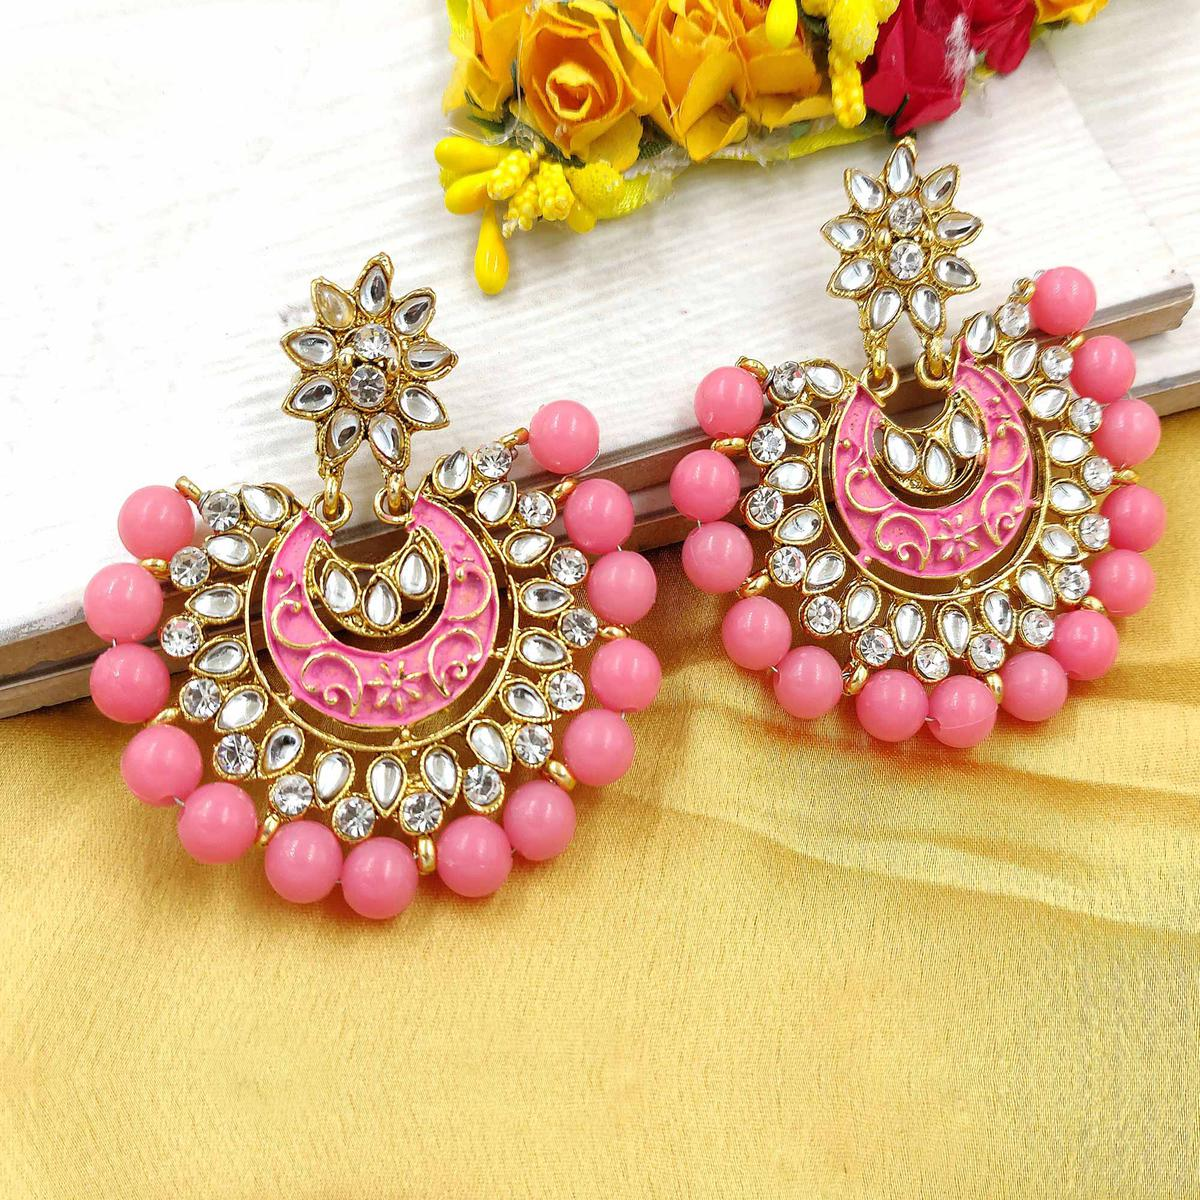 Zaffre Collections - Trending Baby Pink Chandbali Earrings For Women And Girls